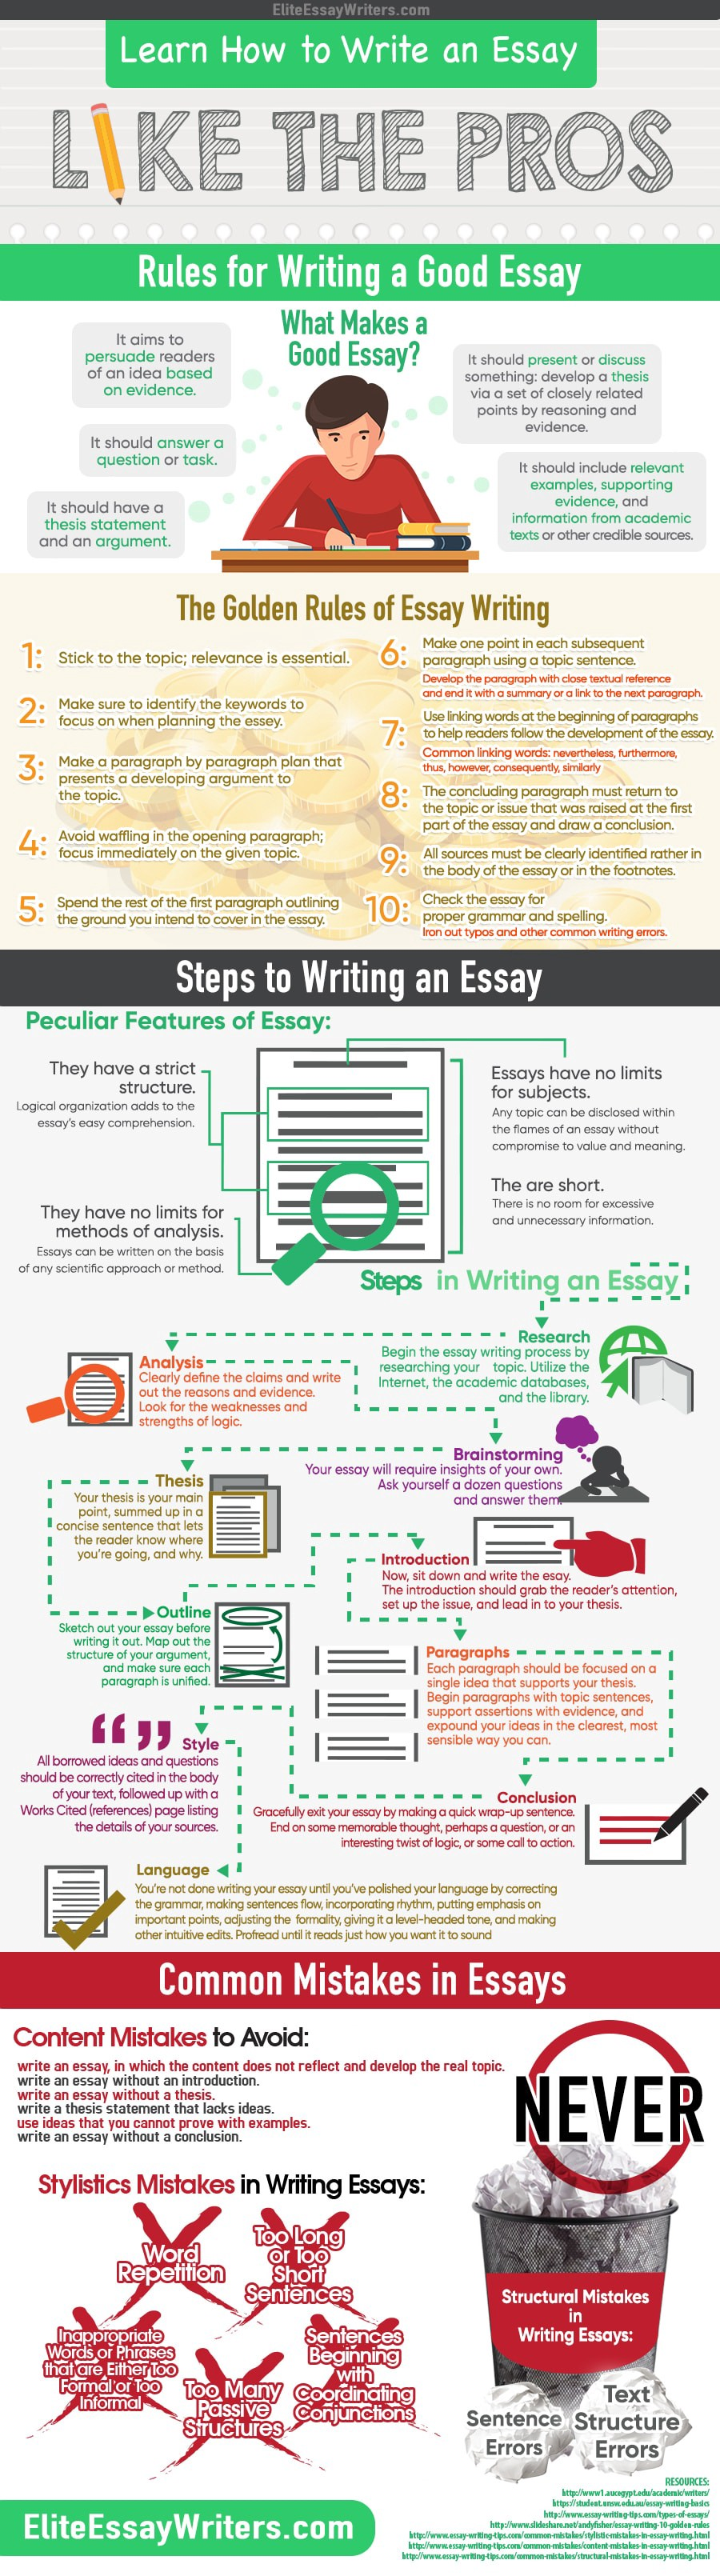 Top Tips On How To Write An Essay And How To Get Your Essay Done Essay Writing Tips